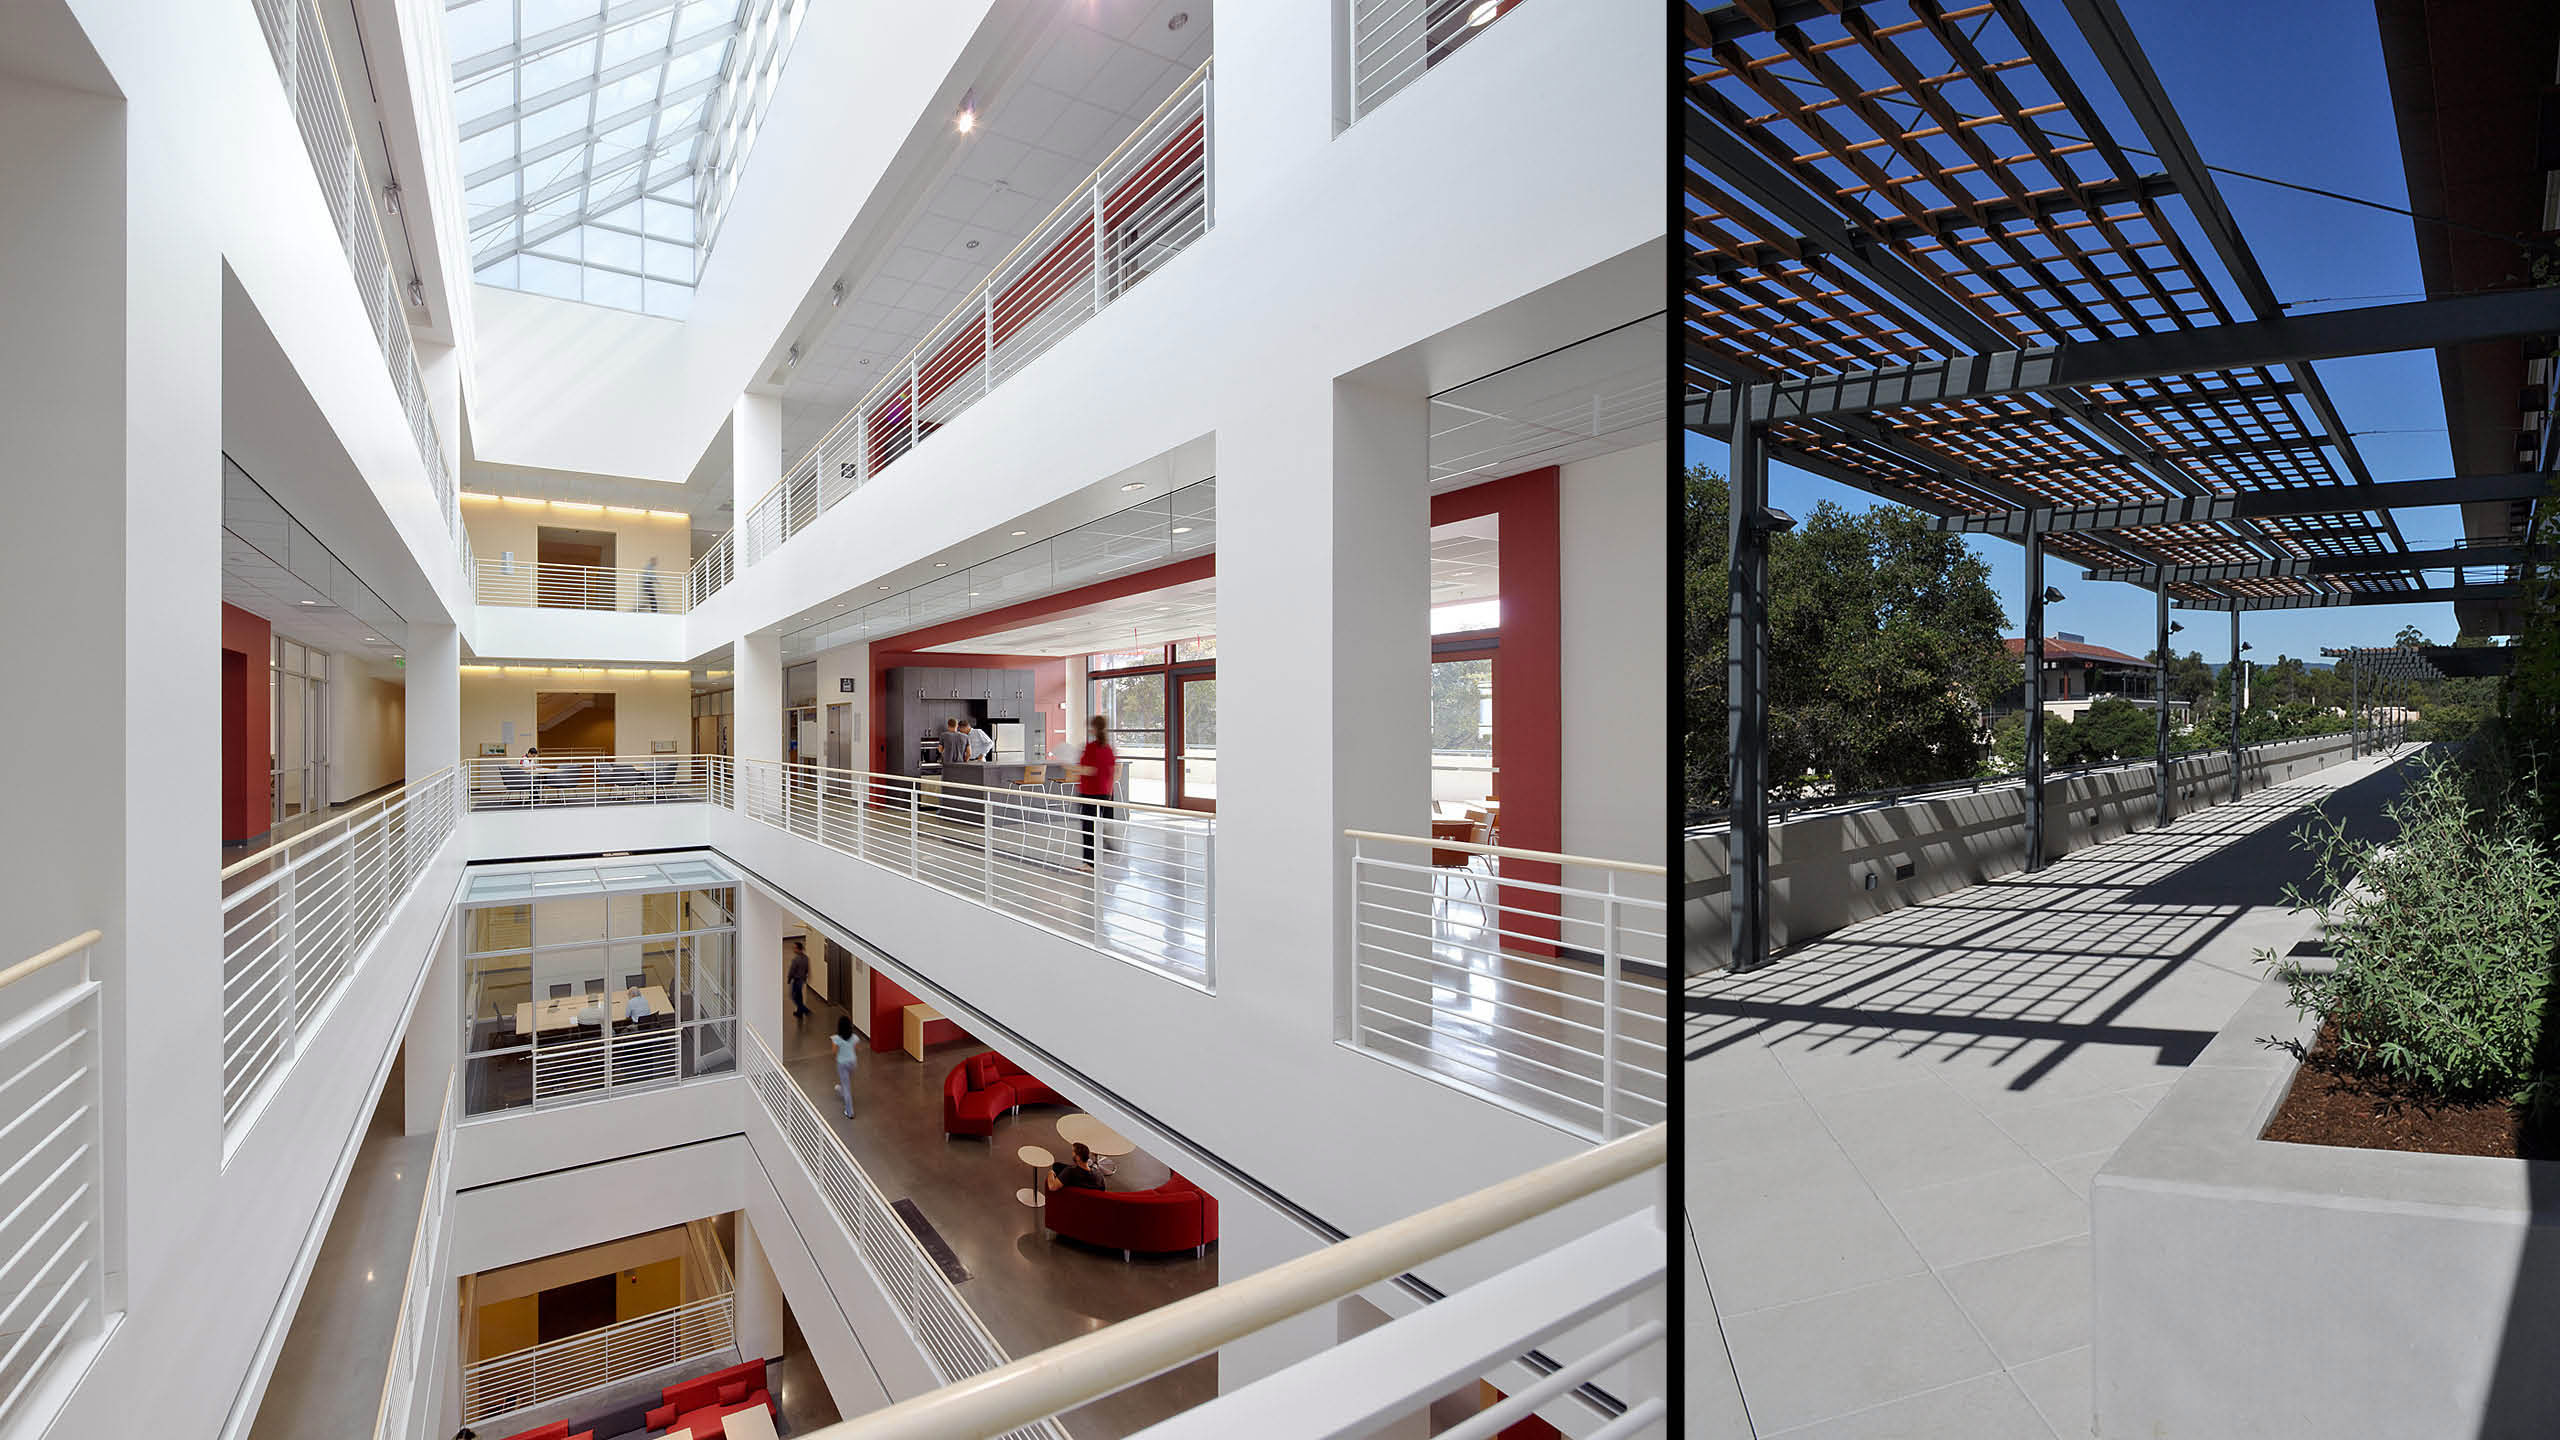 Spilker Engineering and Applied Sciences Building – Stanford University / image 4